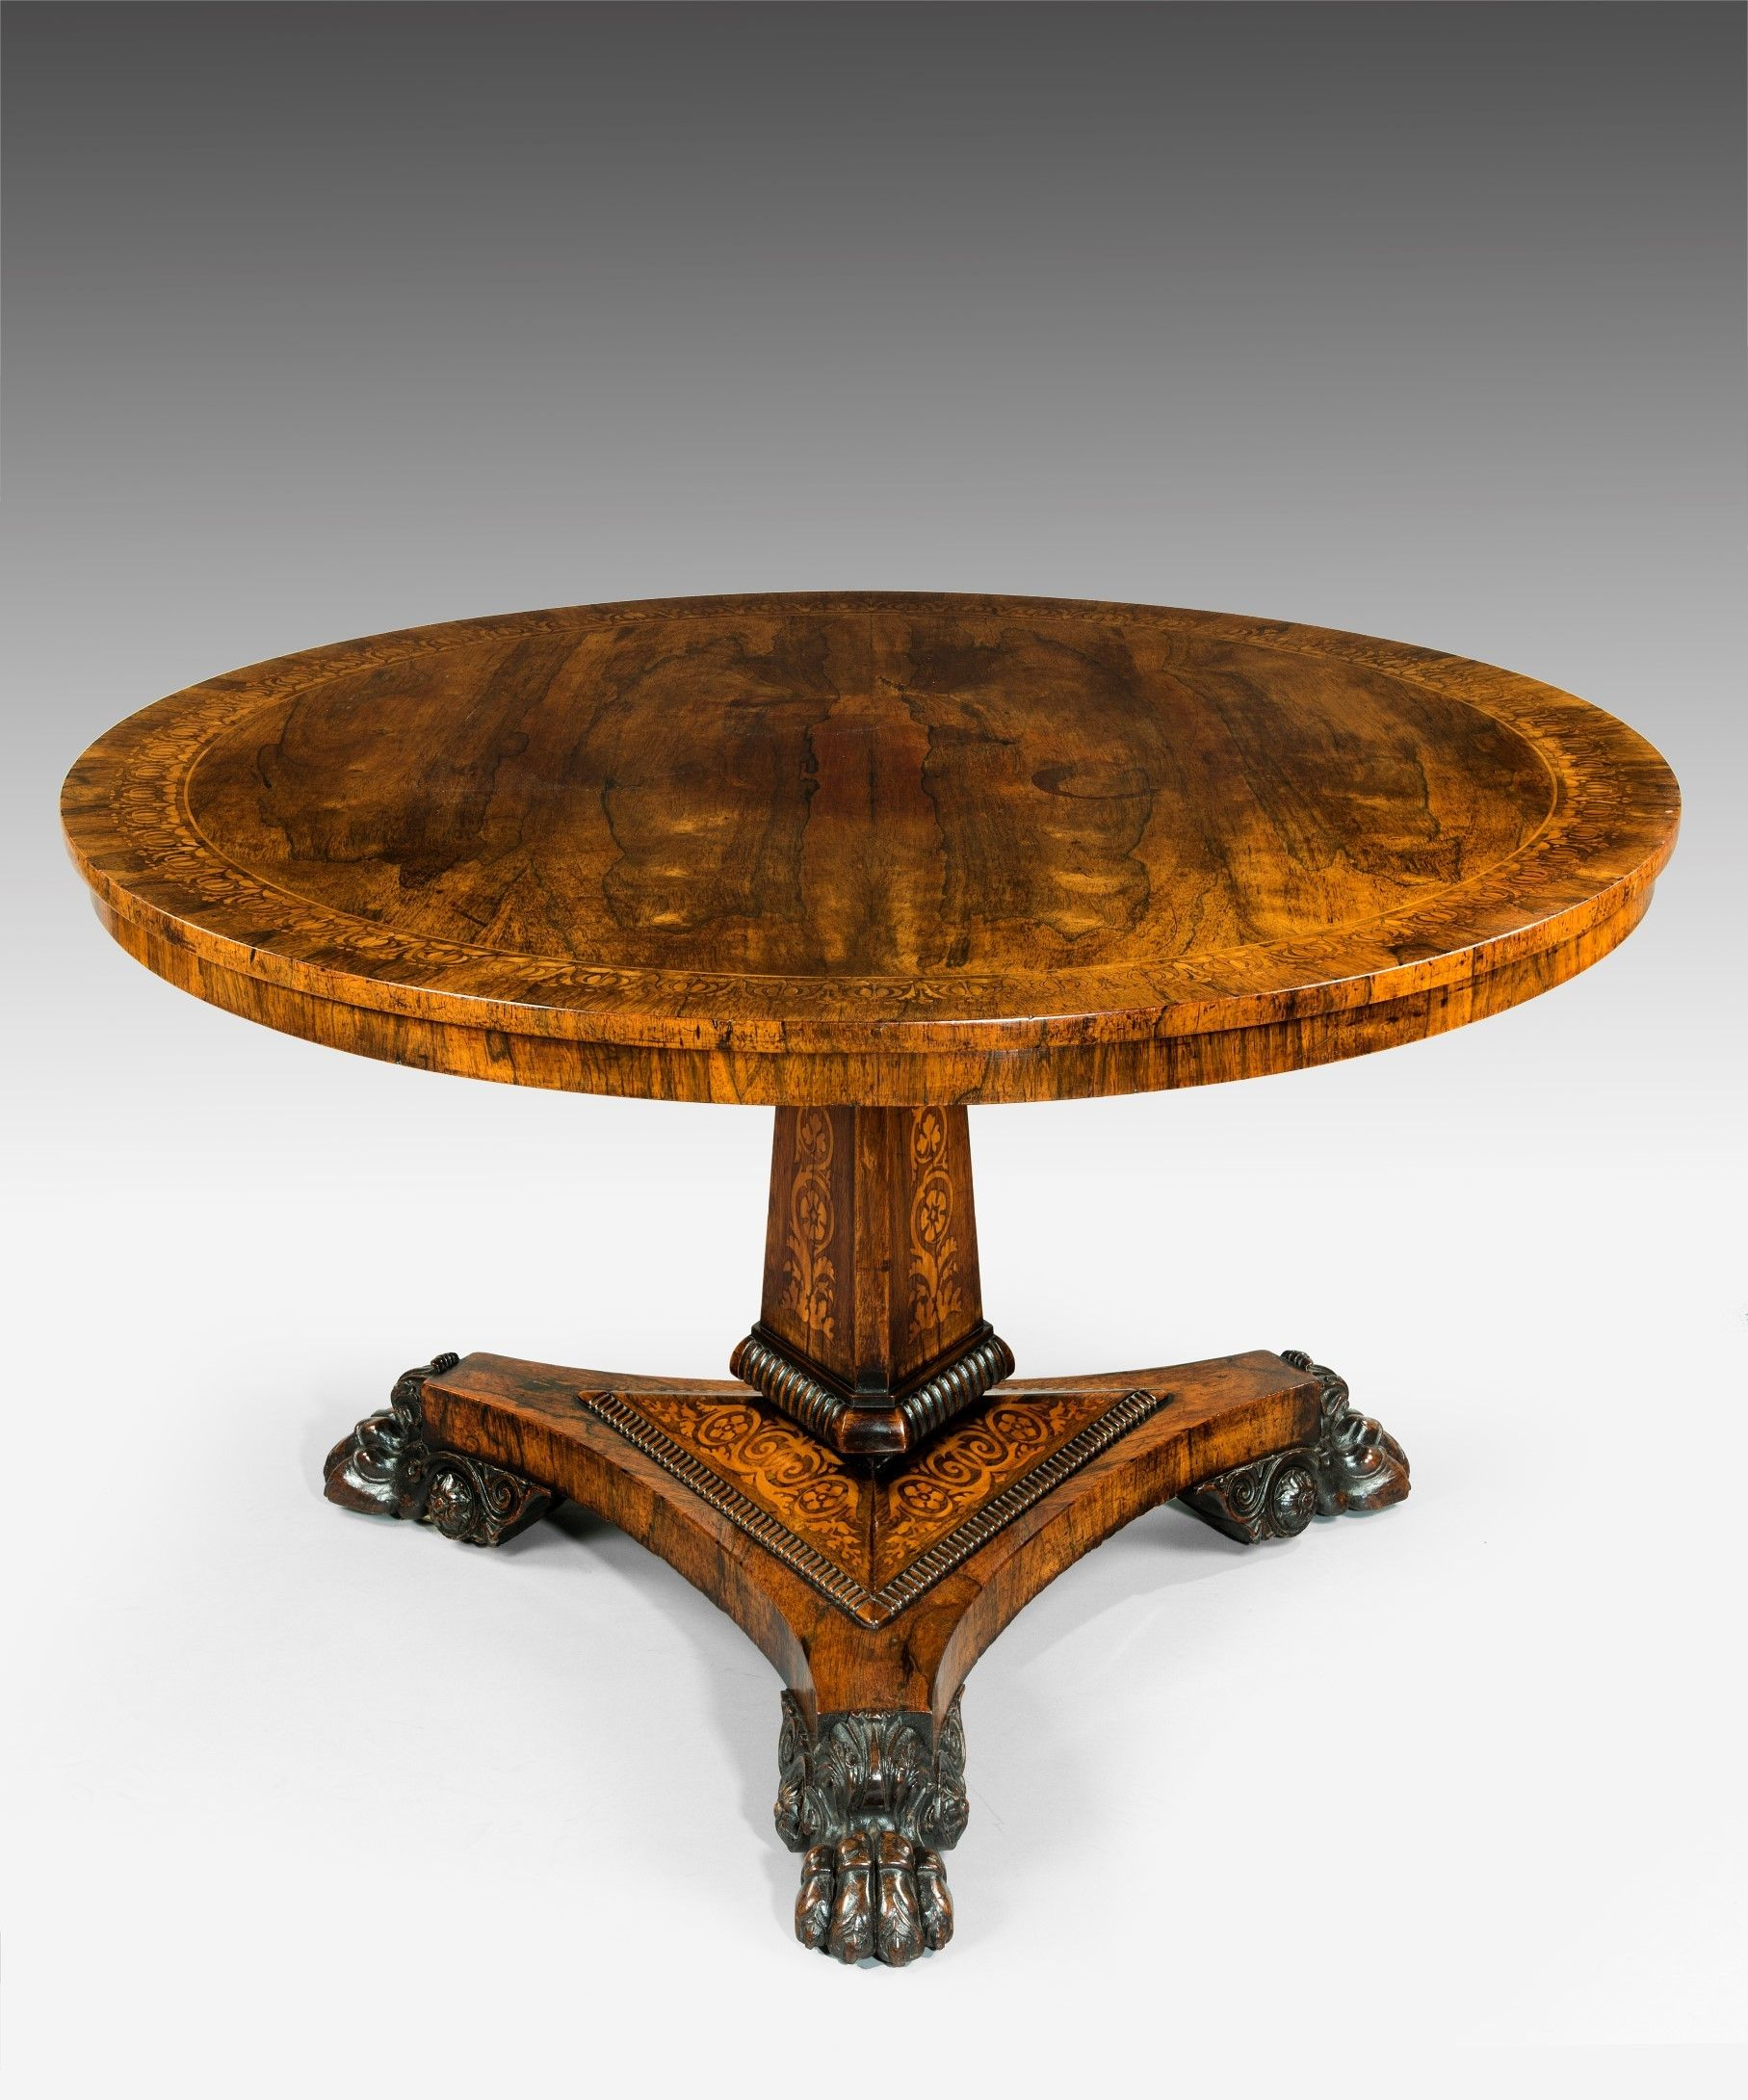 Antique Regency Carved And Inlaid Rosewood Centre Table Homedecor Georgian Furniture Antique Dining Tables Furniture